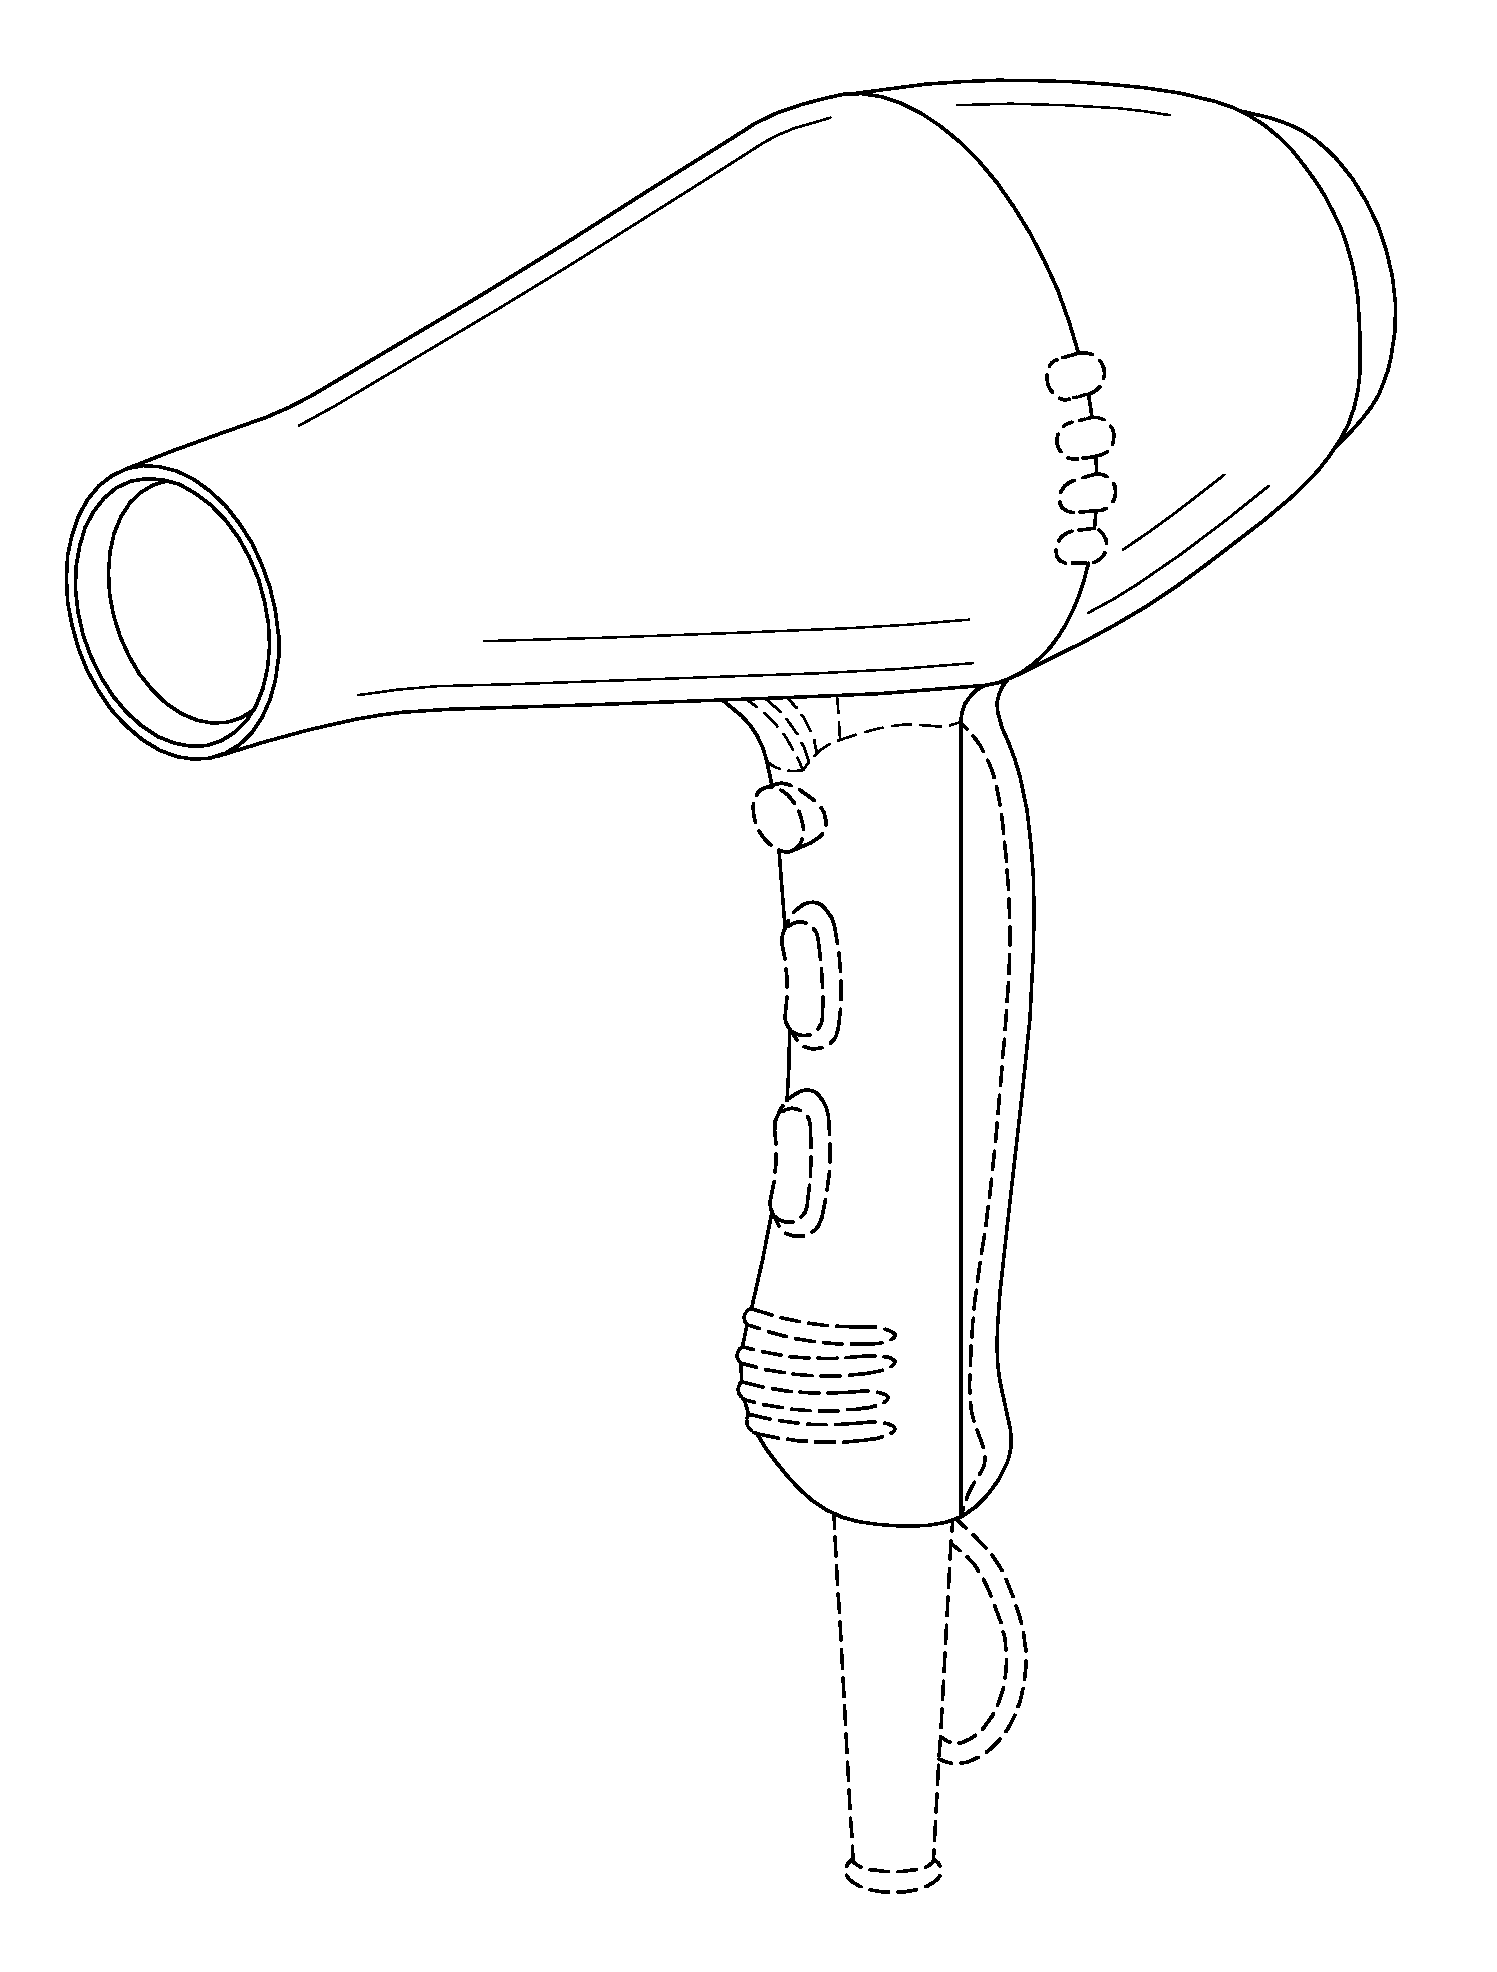 Hair Dryer Drawing ~ Patent usd hair dryer google patents